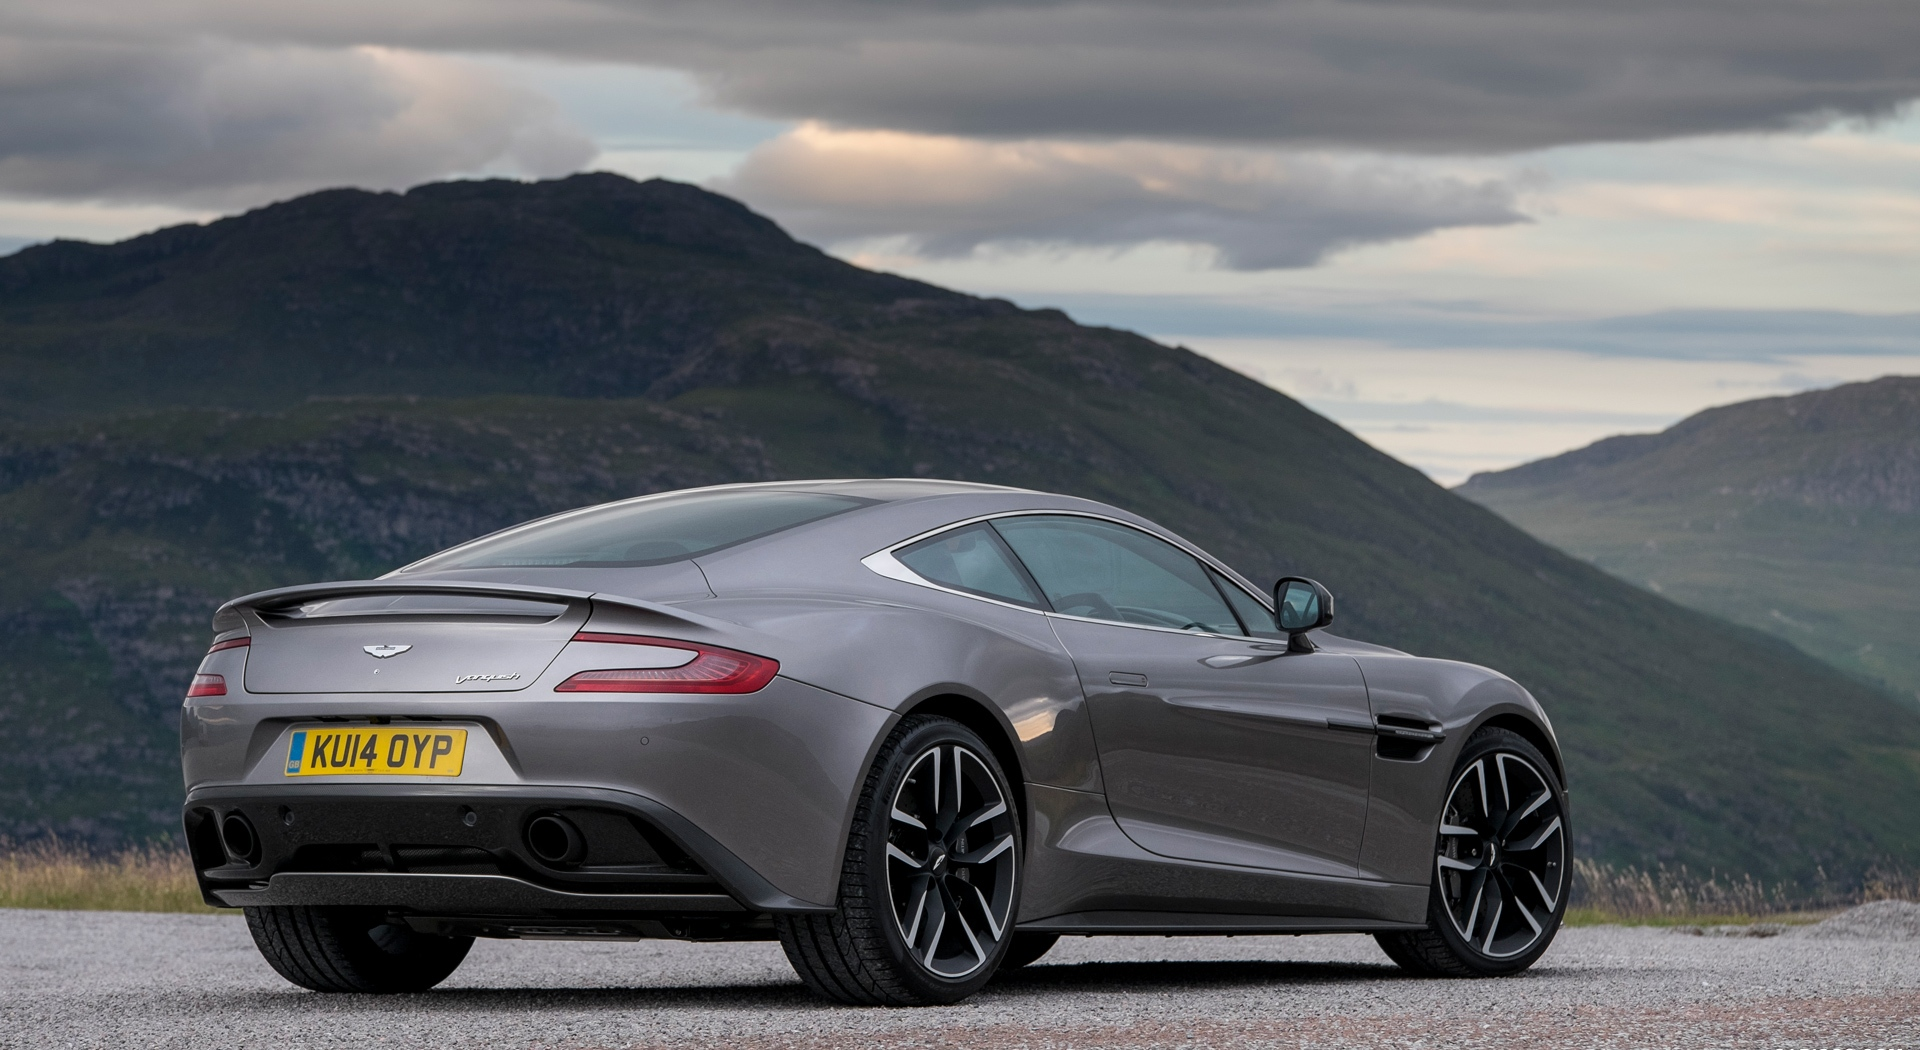 Aston Martin Vanquish Wallpapers cool